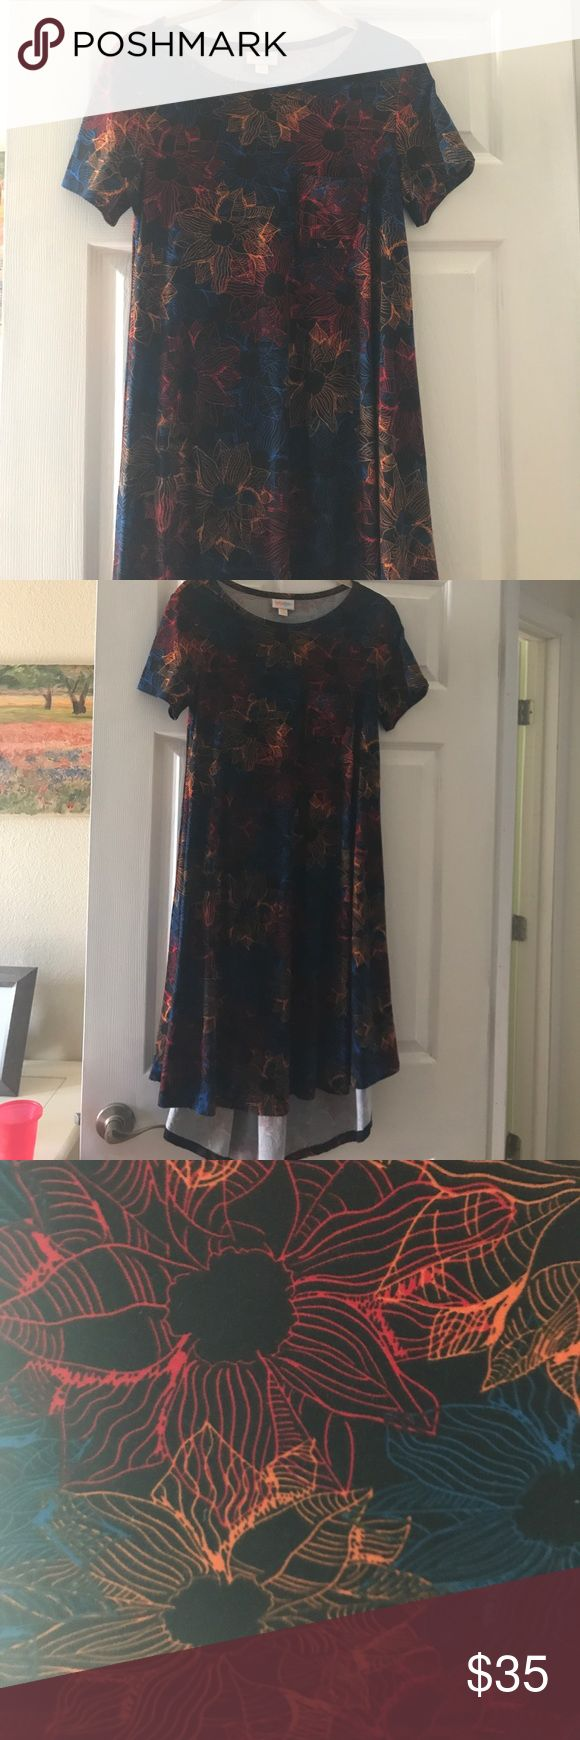 Lularoe carly dress size XXS EUC hardy worn Beautiful leggings material Carly dress size XXS. Hardly worn. Lovely pattern. LuLaRoe Dresses High Low